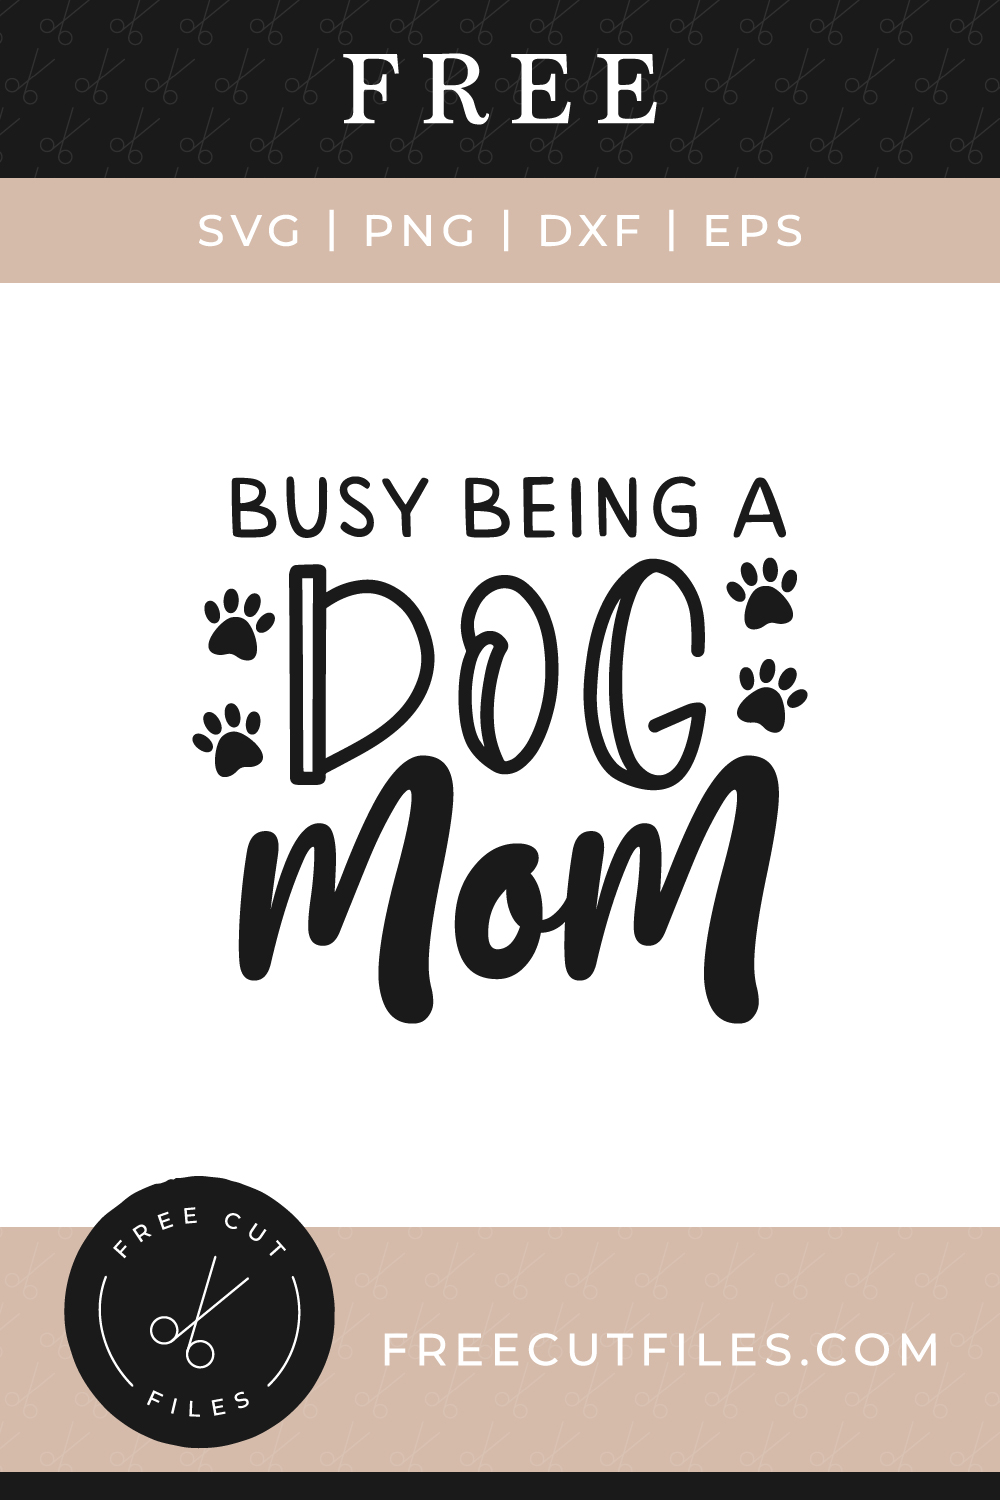 Free Busy being a dog mom svg